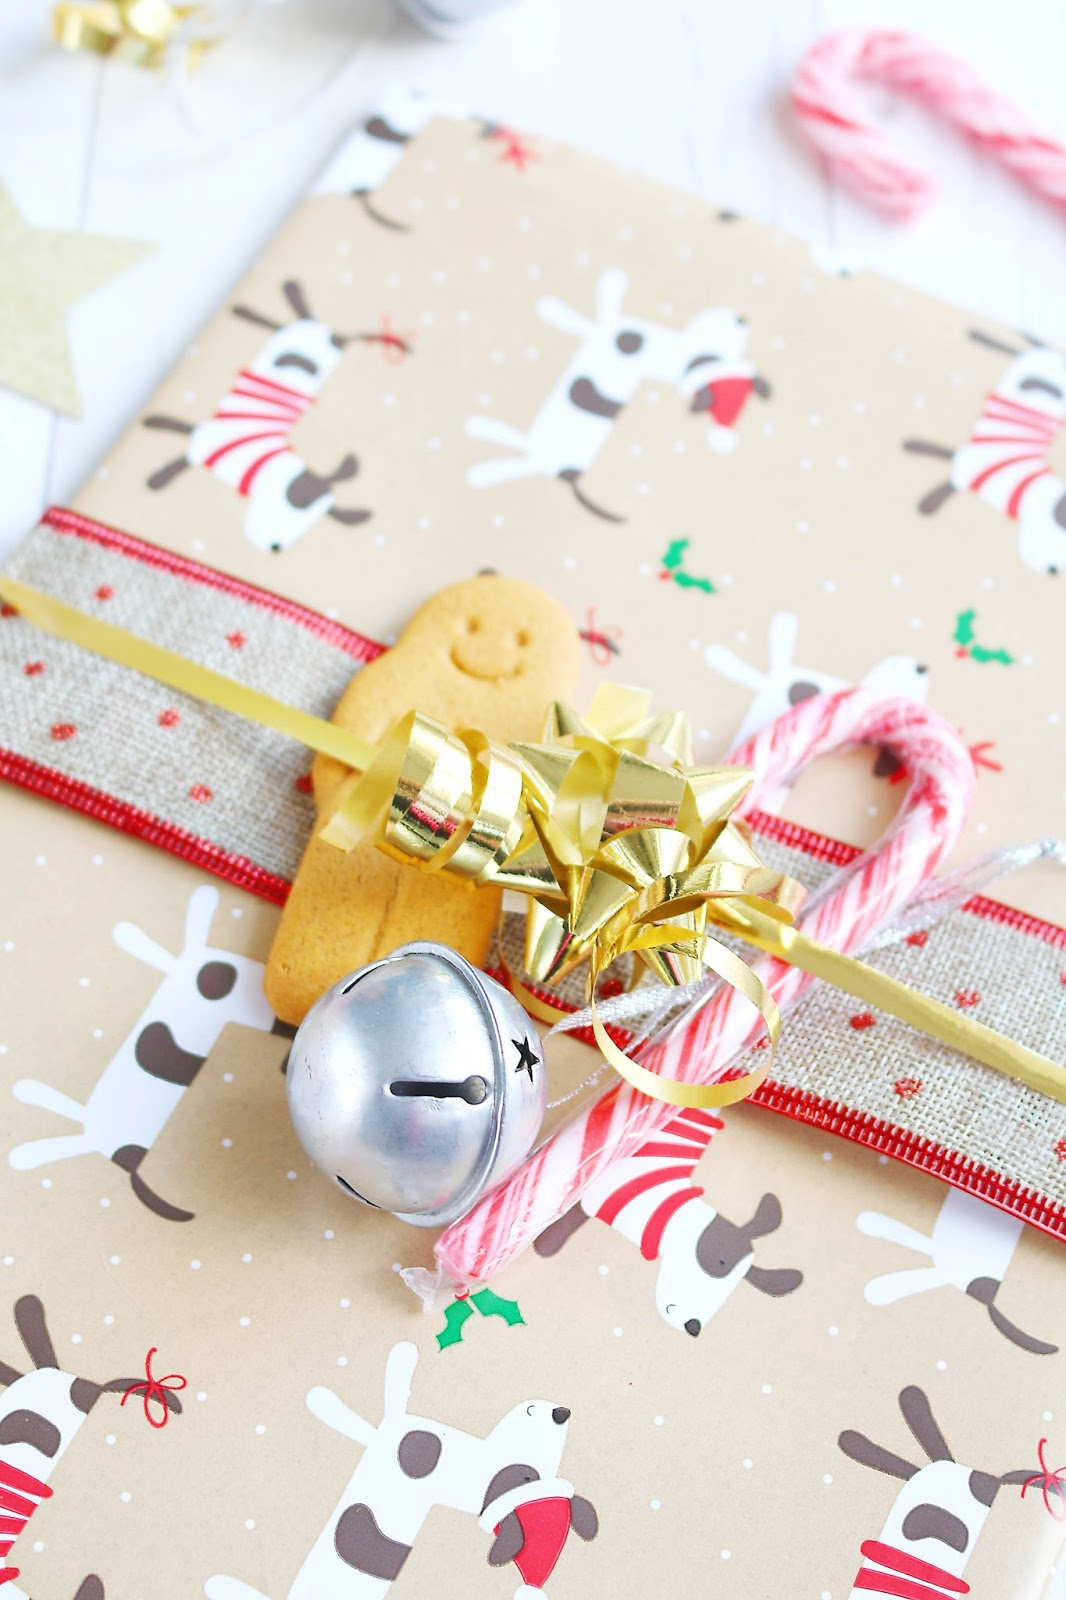 Christmas, Blogmas, Presents, Lifestyle, Wrapping Ideas, Pinterest, Saving Money,  Pinterest wrapping ideas, Pinterest gift wrapping, Pinterest Present wrapping, present wrapping ideas on a budget